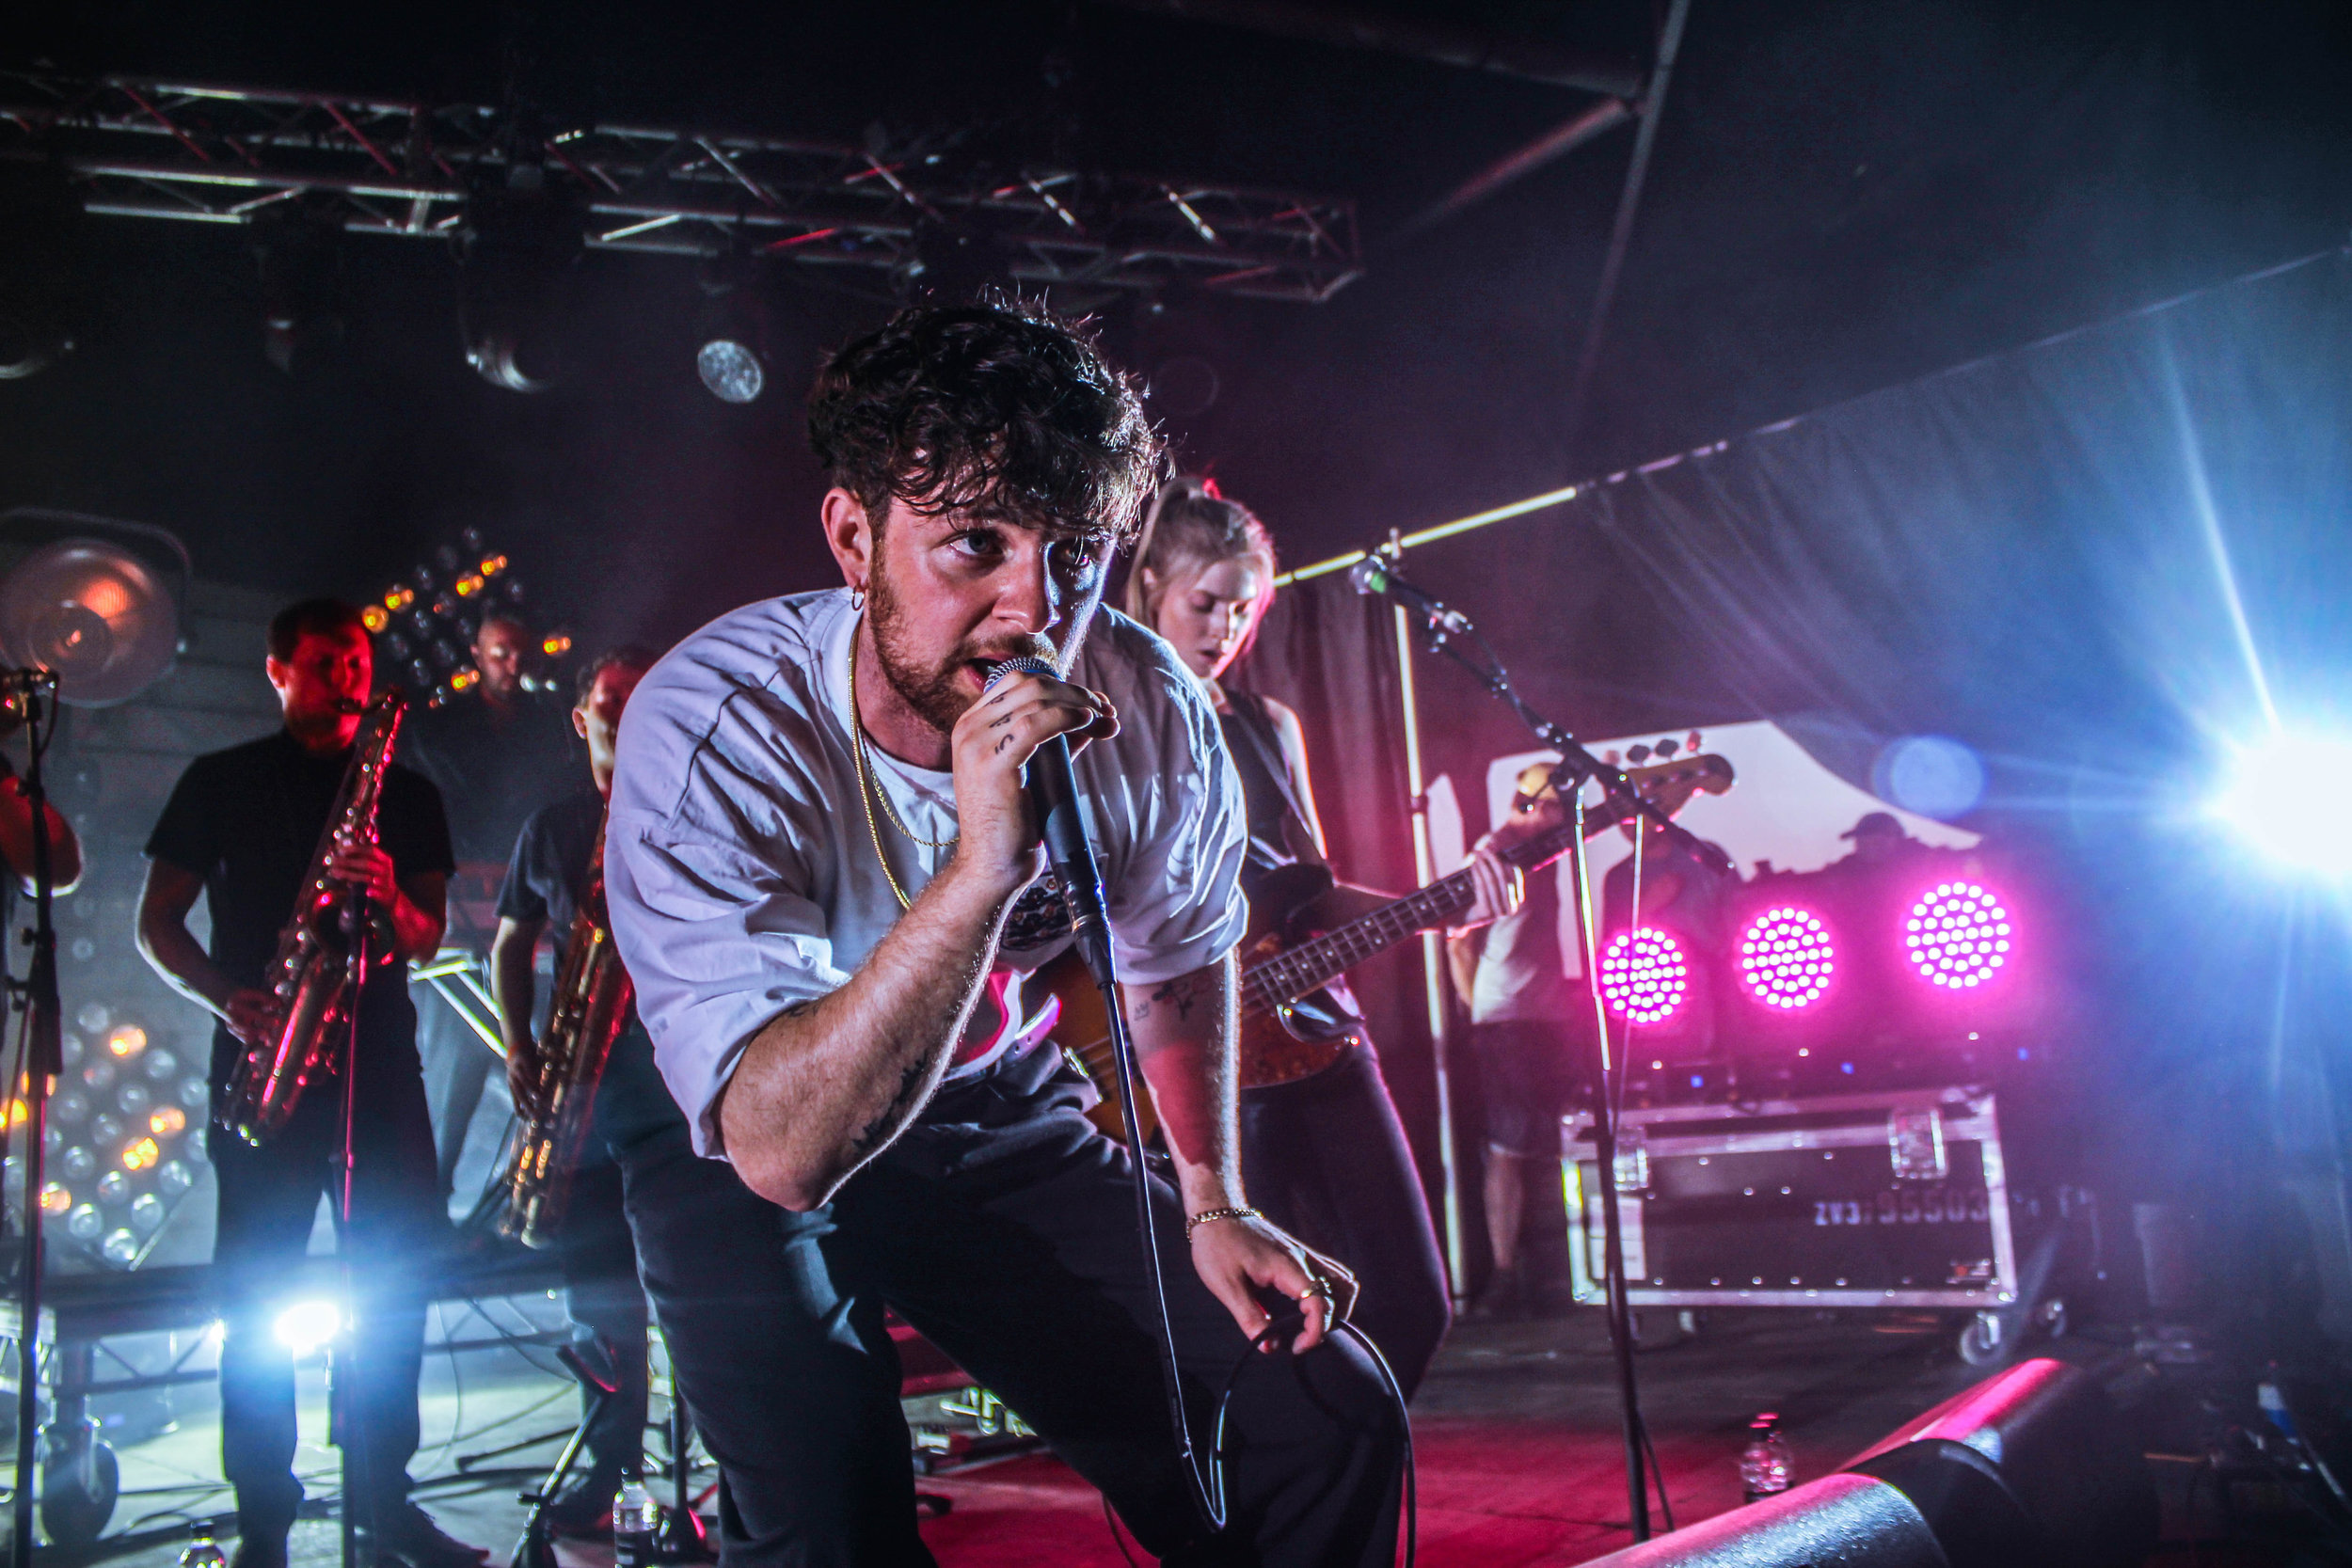 Tom Grennan at Barn on the Farm - Photo © Concentus Music